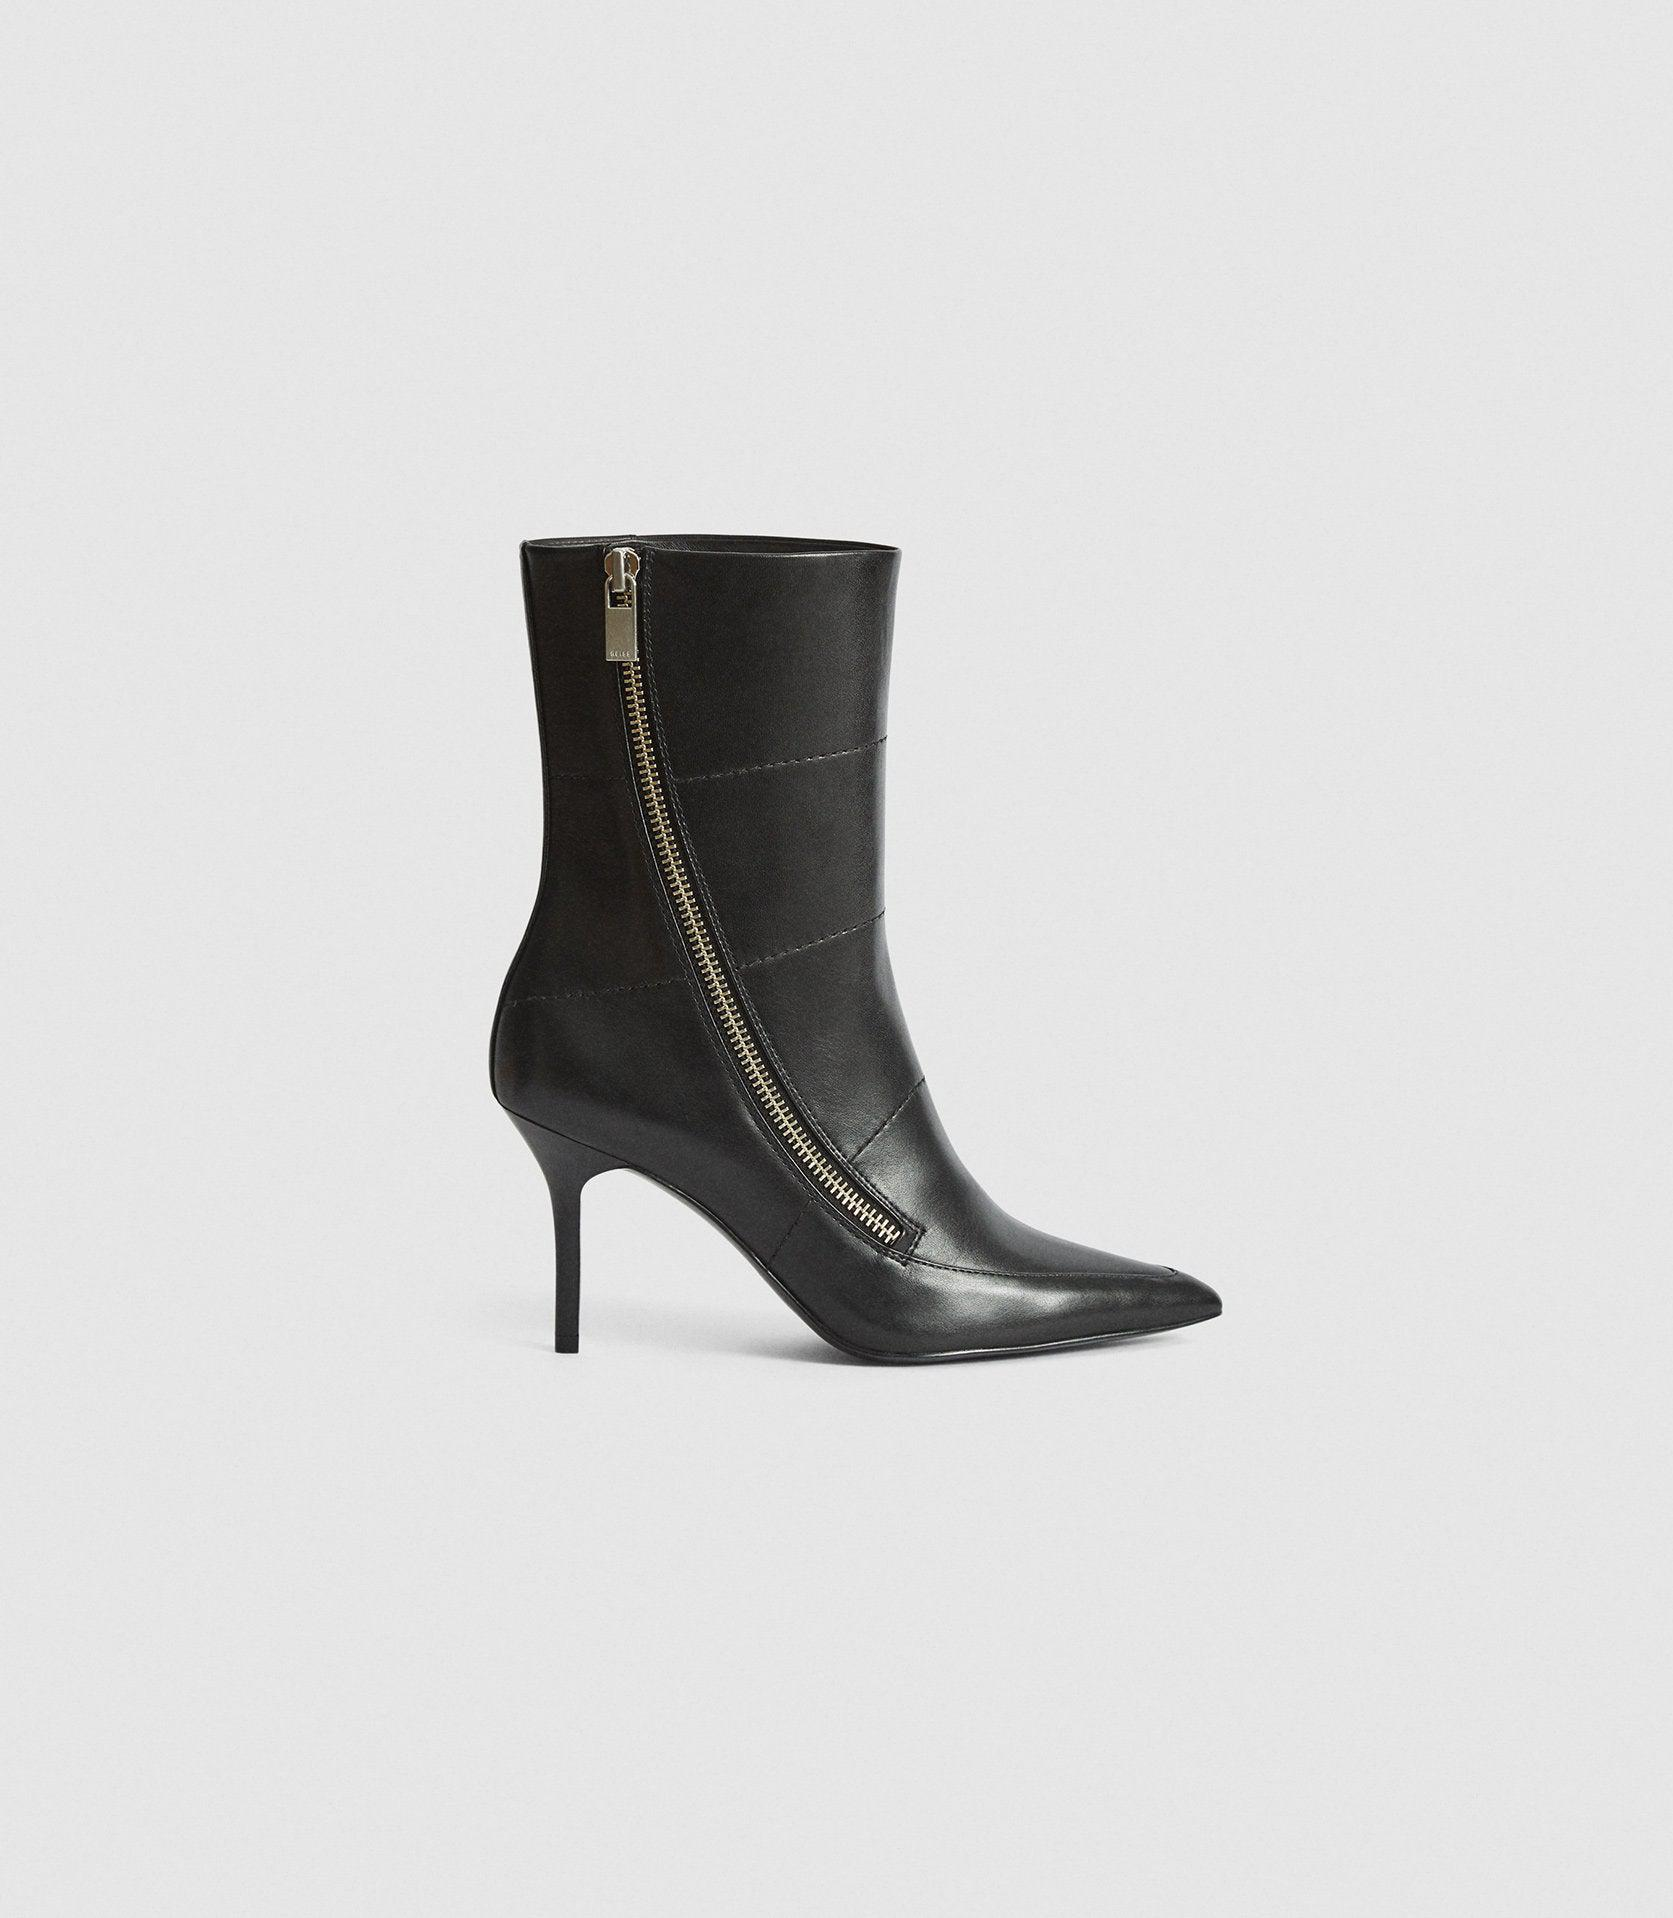 HOXTON - LEATHER POINT-TOE BOOTS